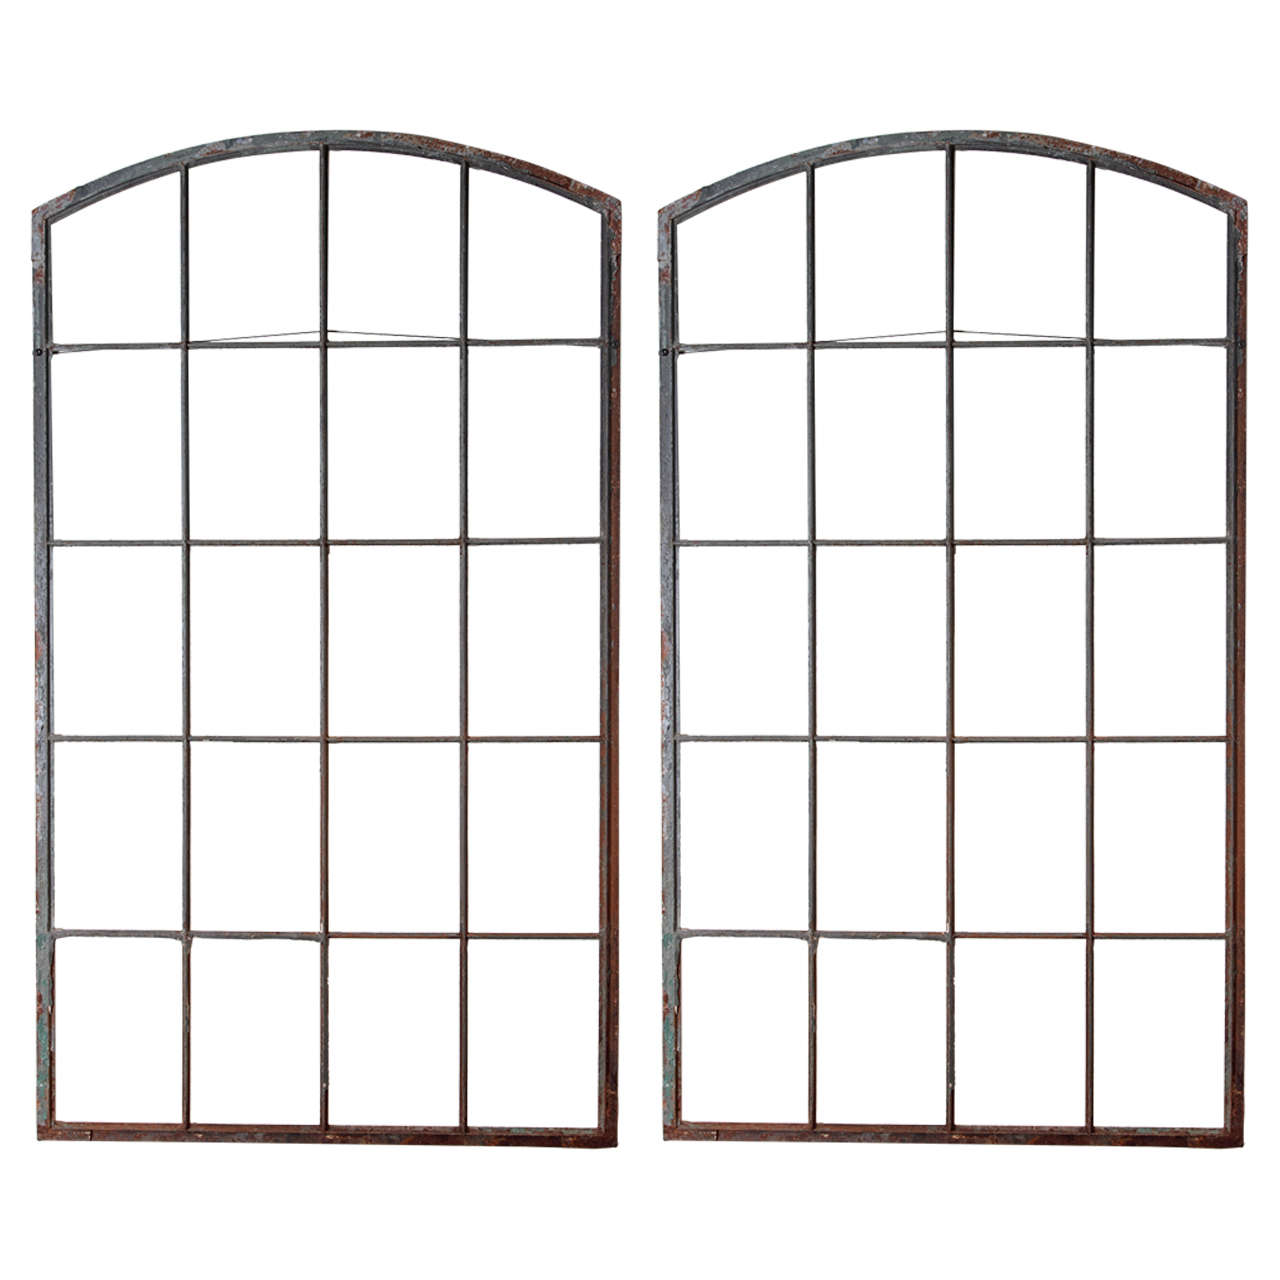 Iron warehouse fen tre frame as wall decor at 1stdibs for Decoration fenetre